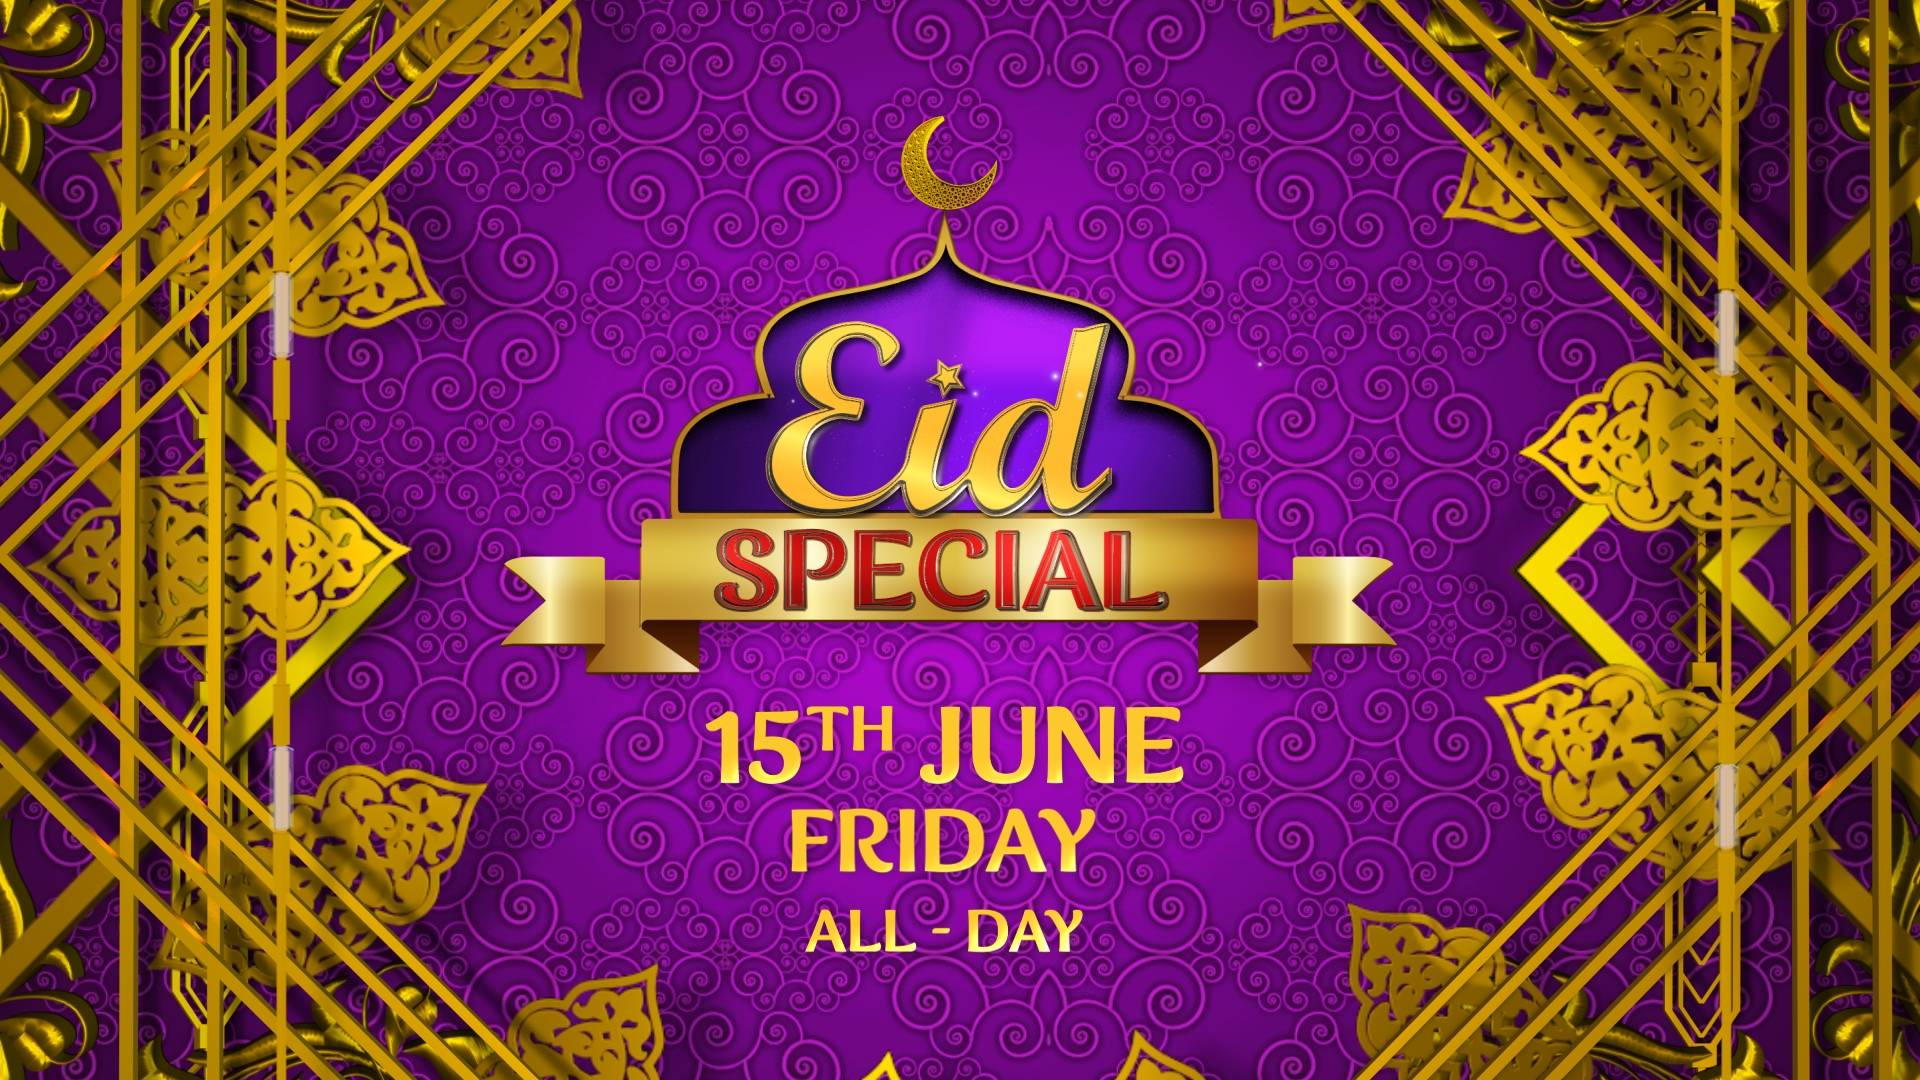 Eid Special -15th June this Friday